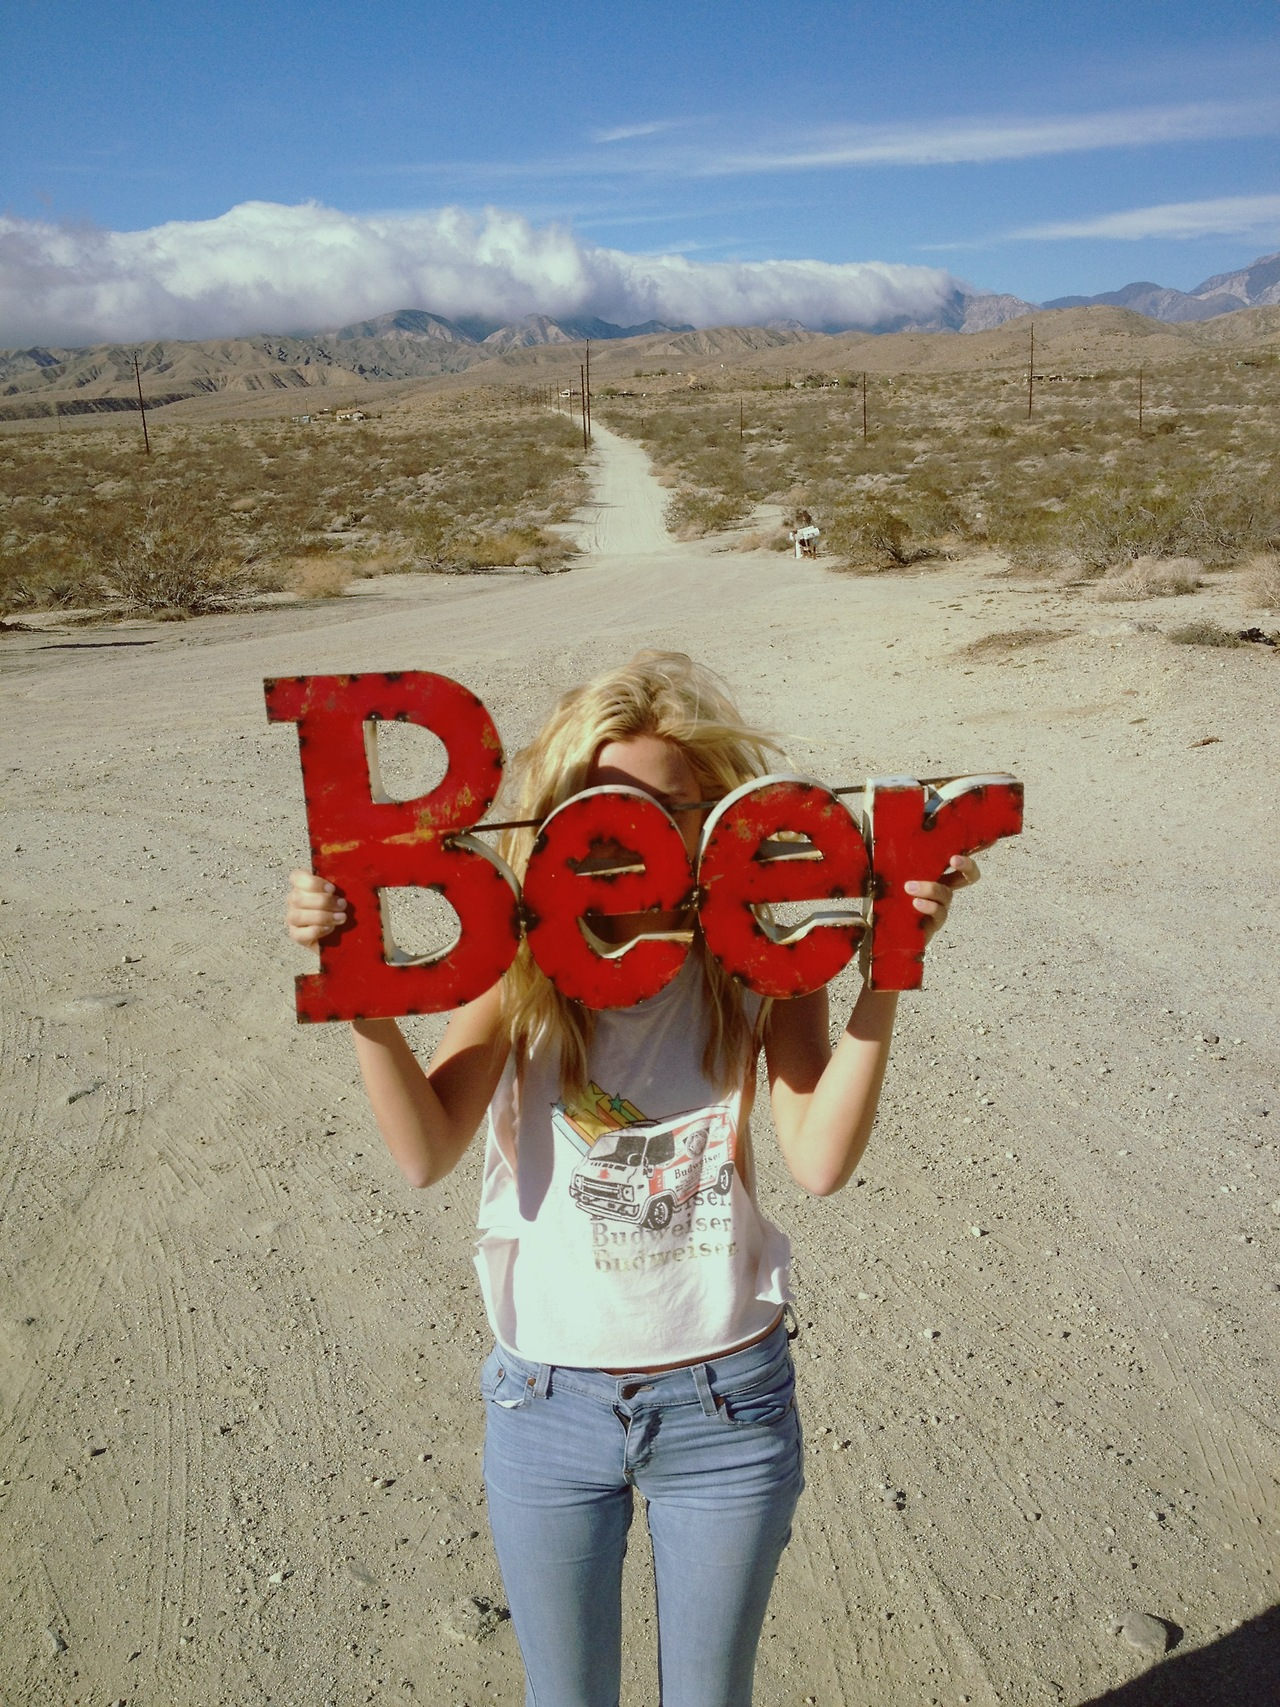 photographer Dana Trippe